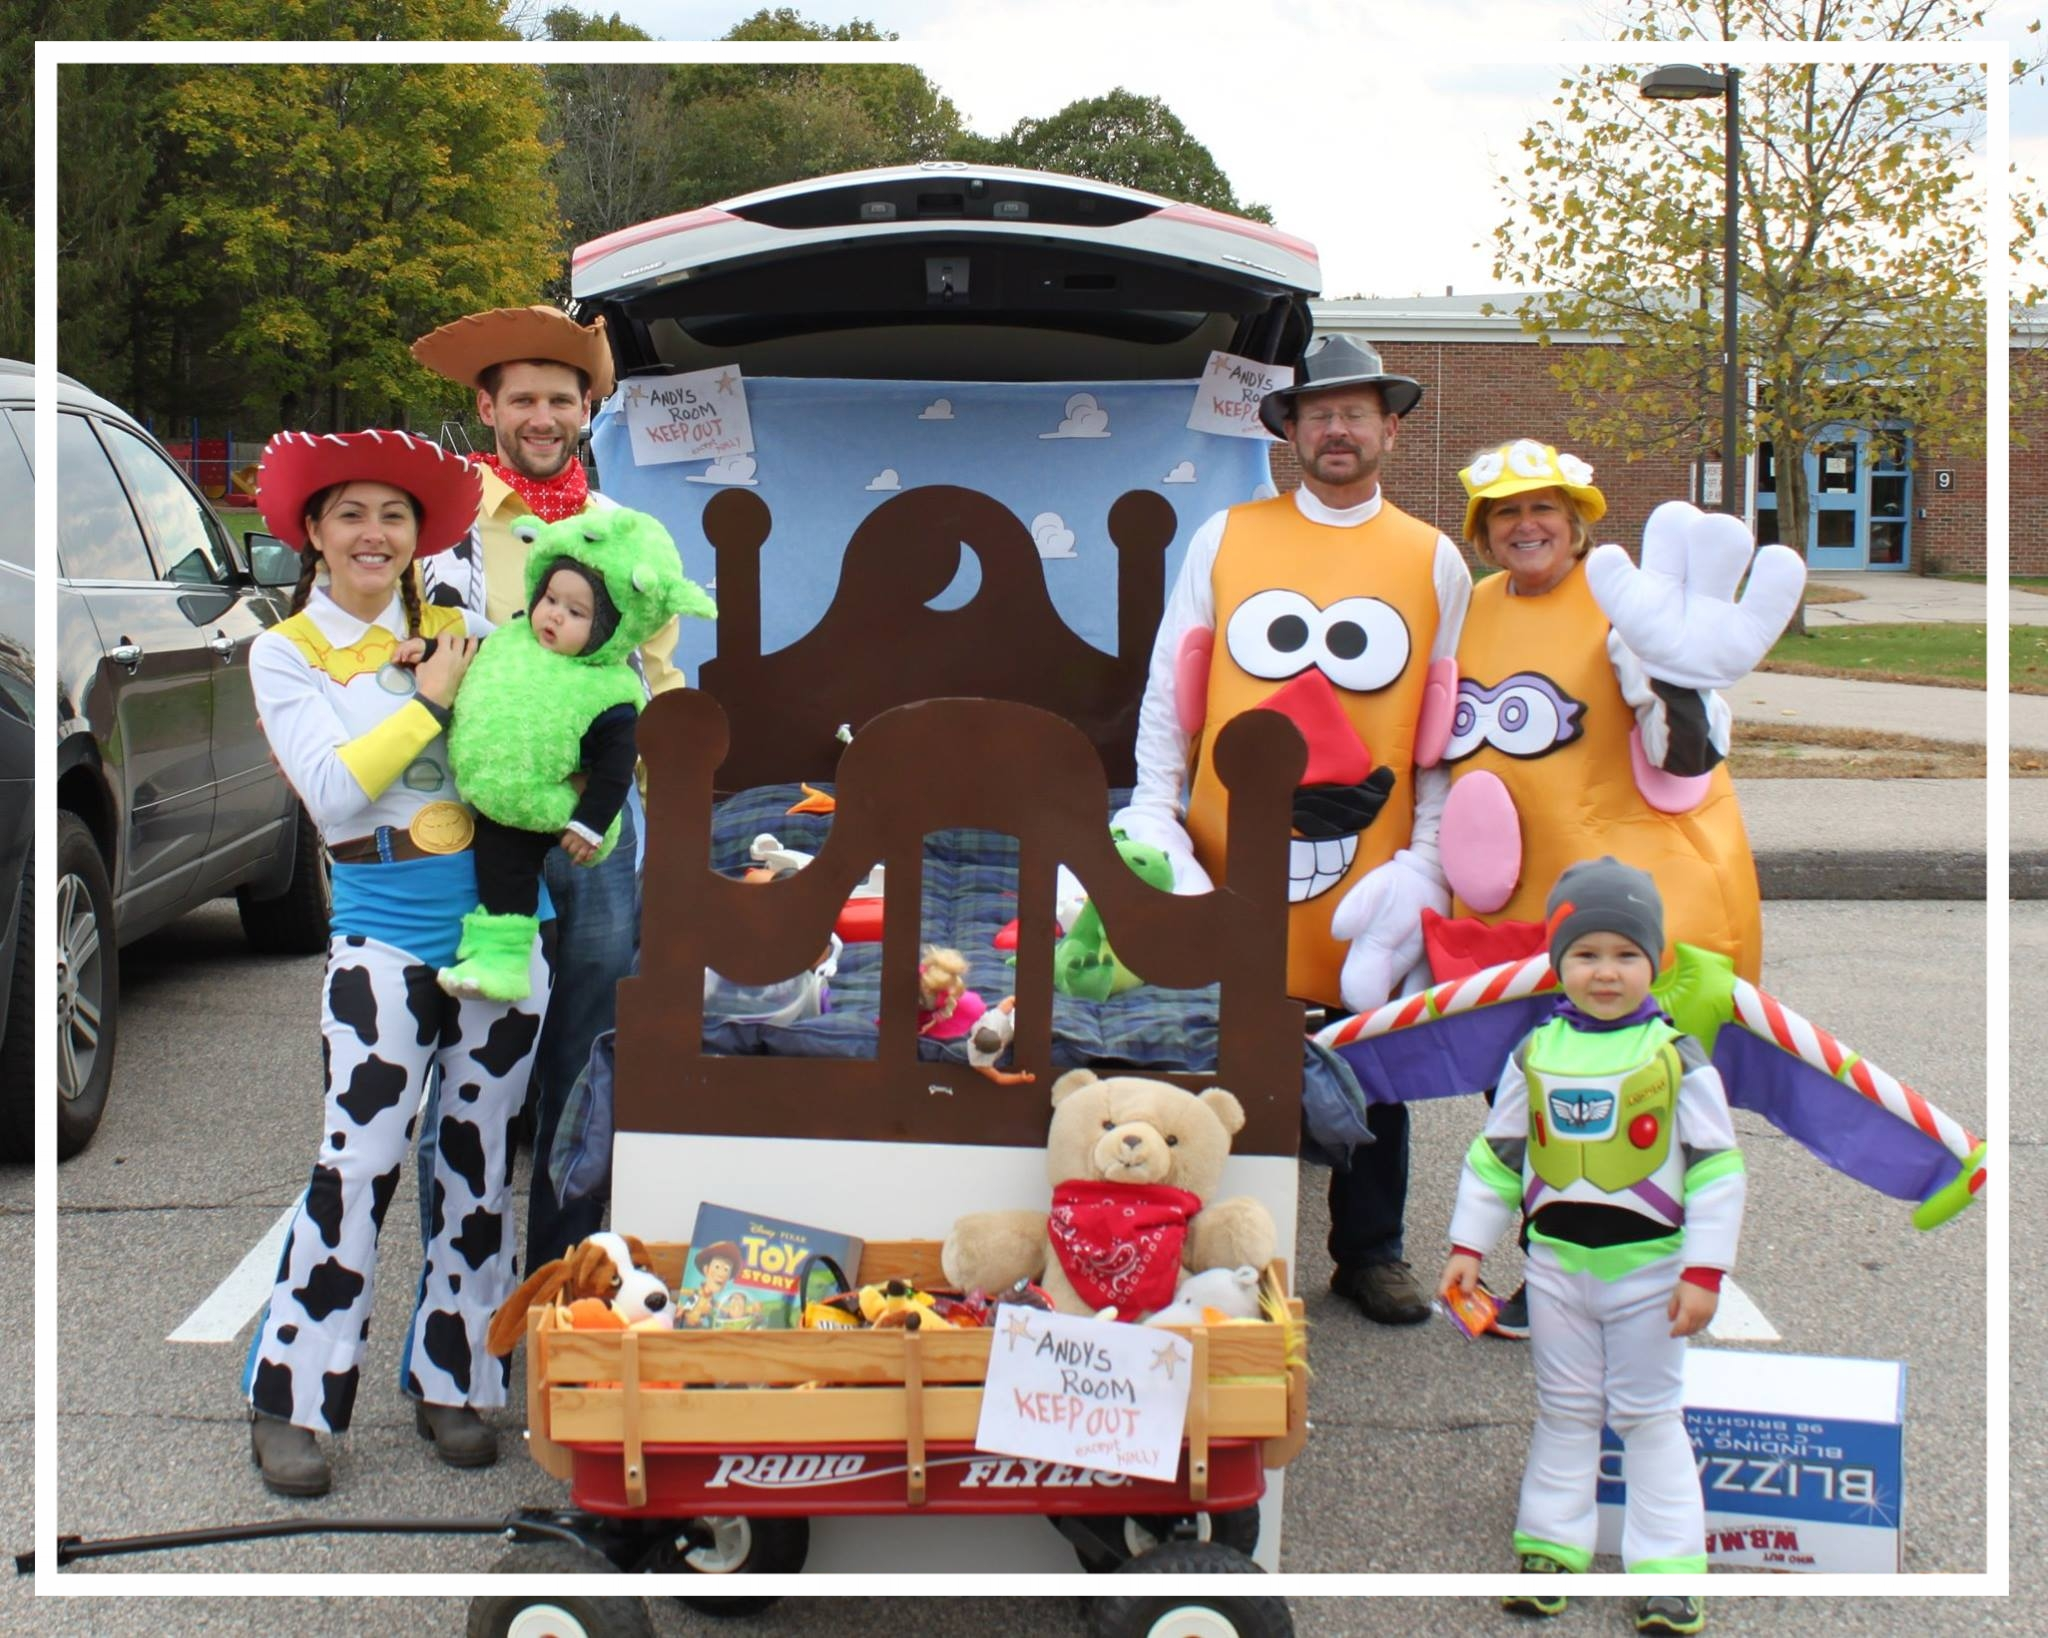 2016 Best decorated car - toy story theme